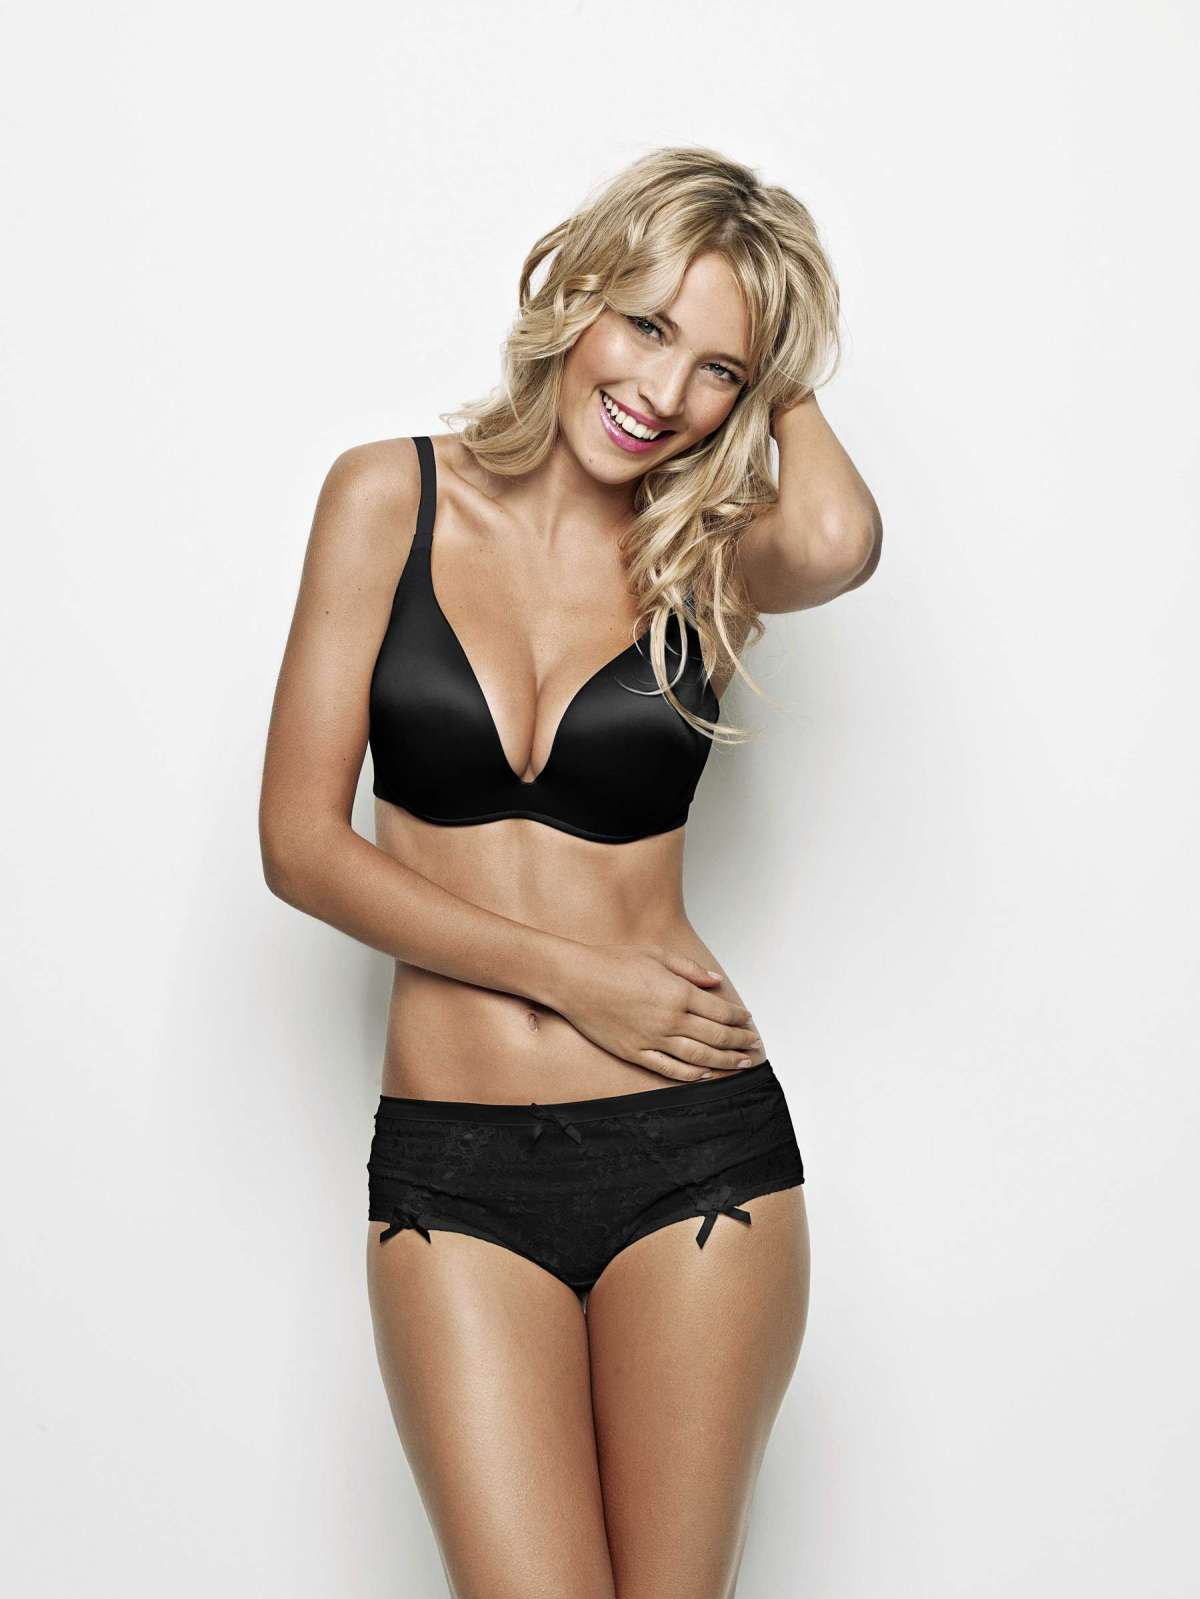 http://lingerietribute.files.wordpress.com/2013/03/luisana-lopilato-ultimo-lingerie.jpg?w=1200